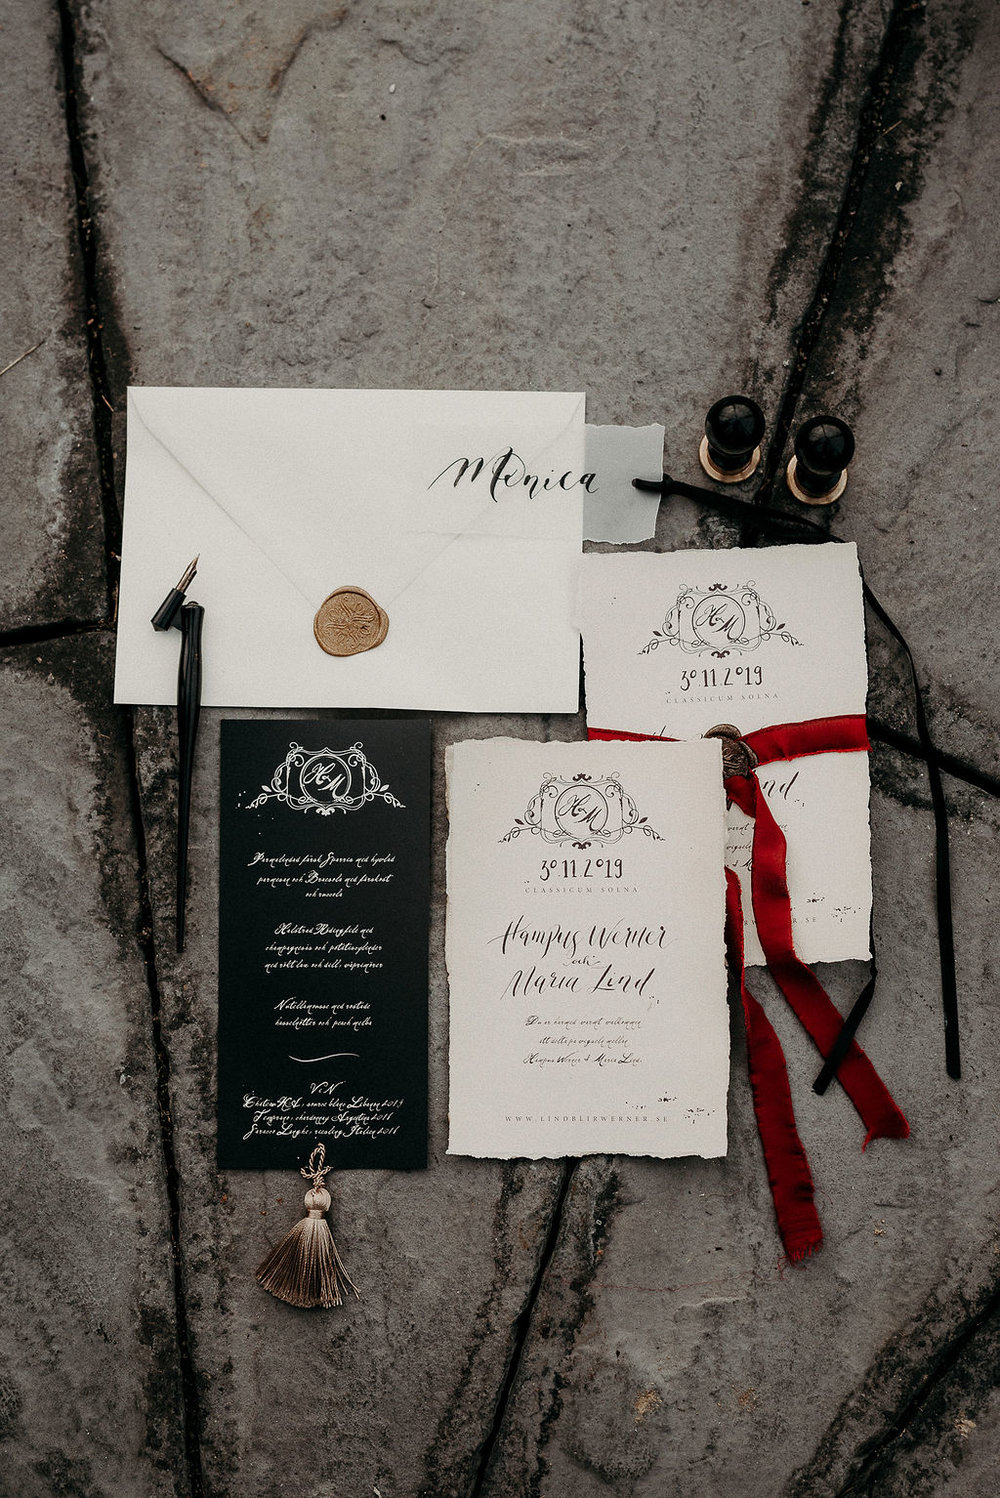 Wedding stationary + invitations